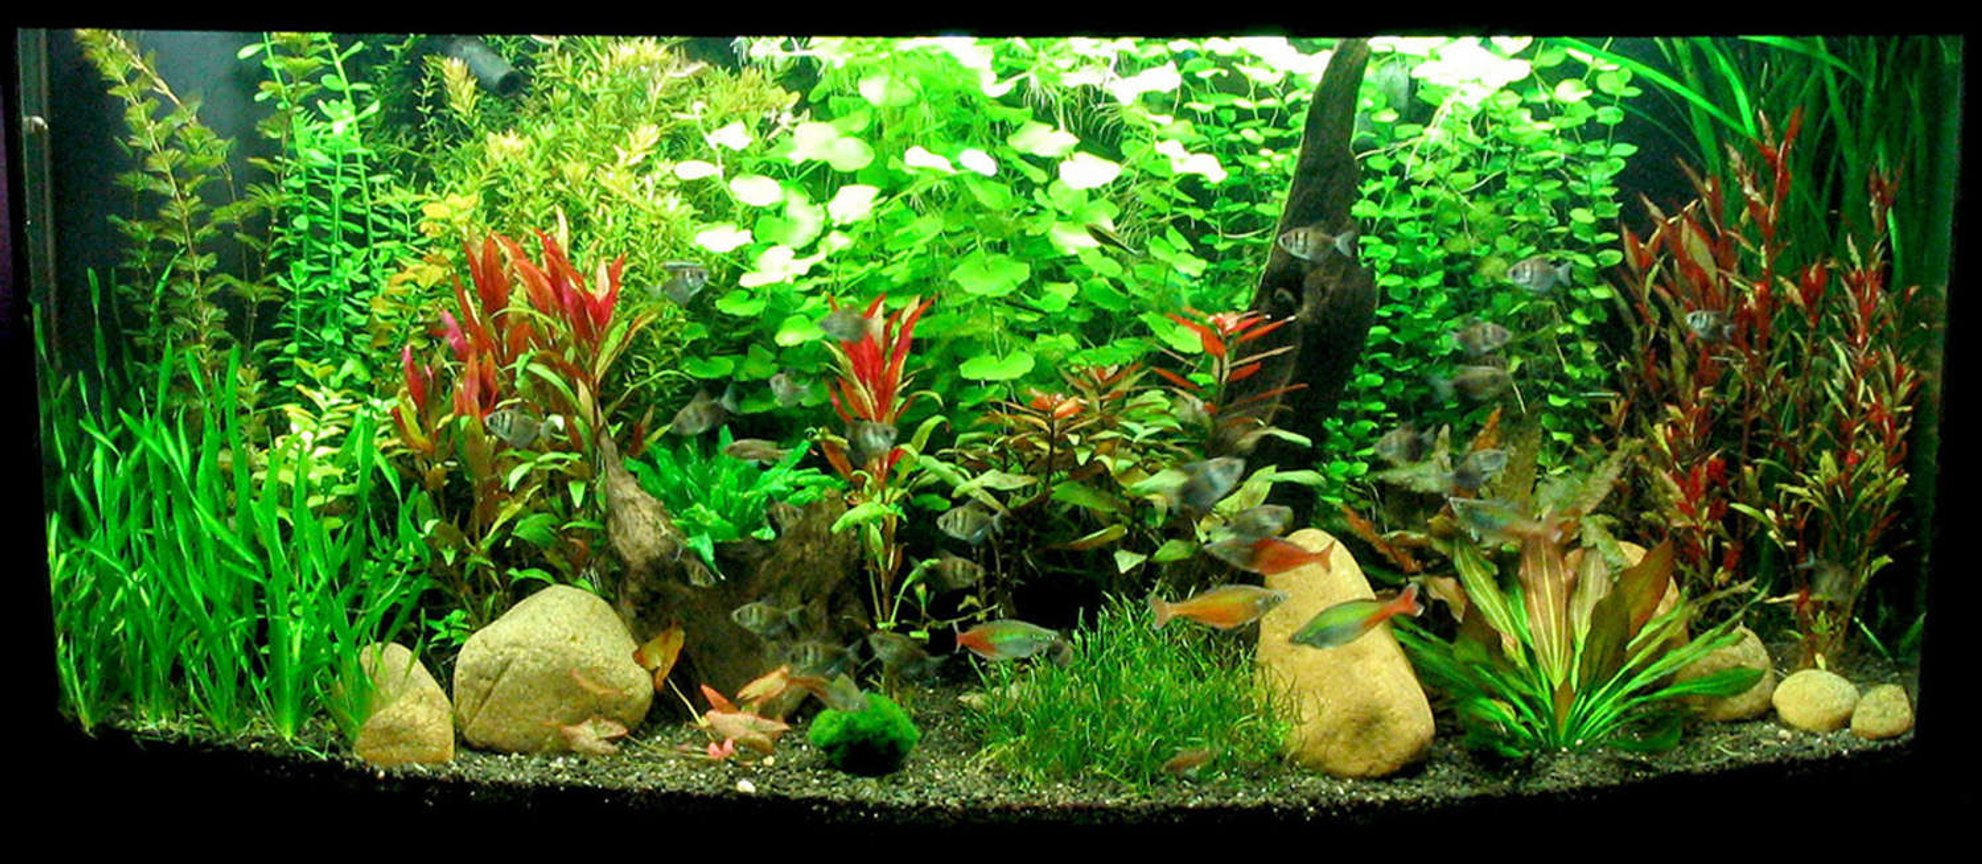 72 gallons planted tank (mostly live plants and fish) - Planted 72 bowfront (overflow) with rock and driftwood